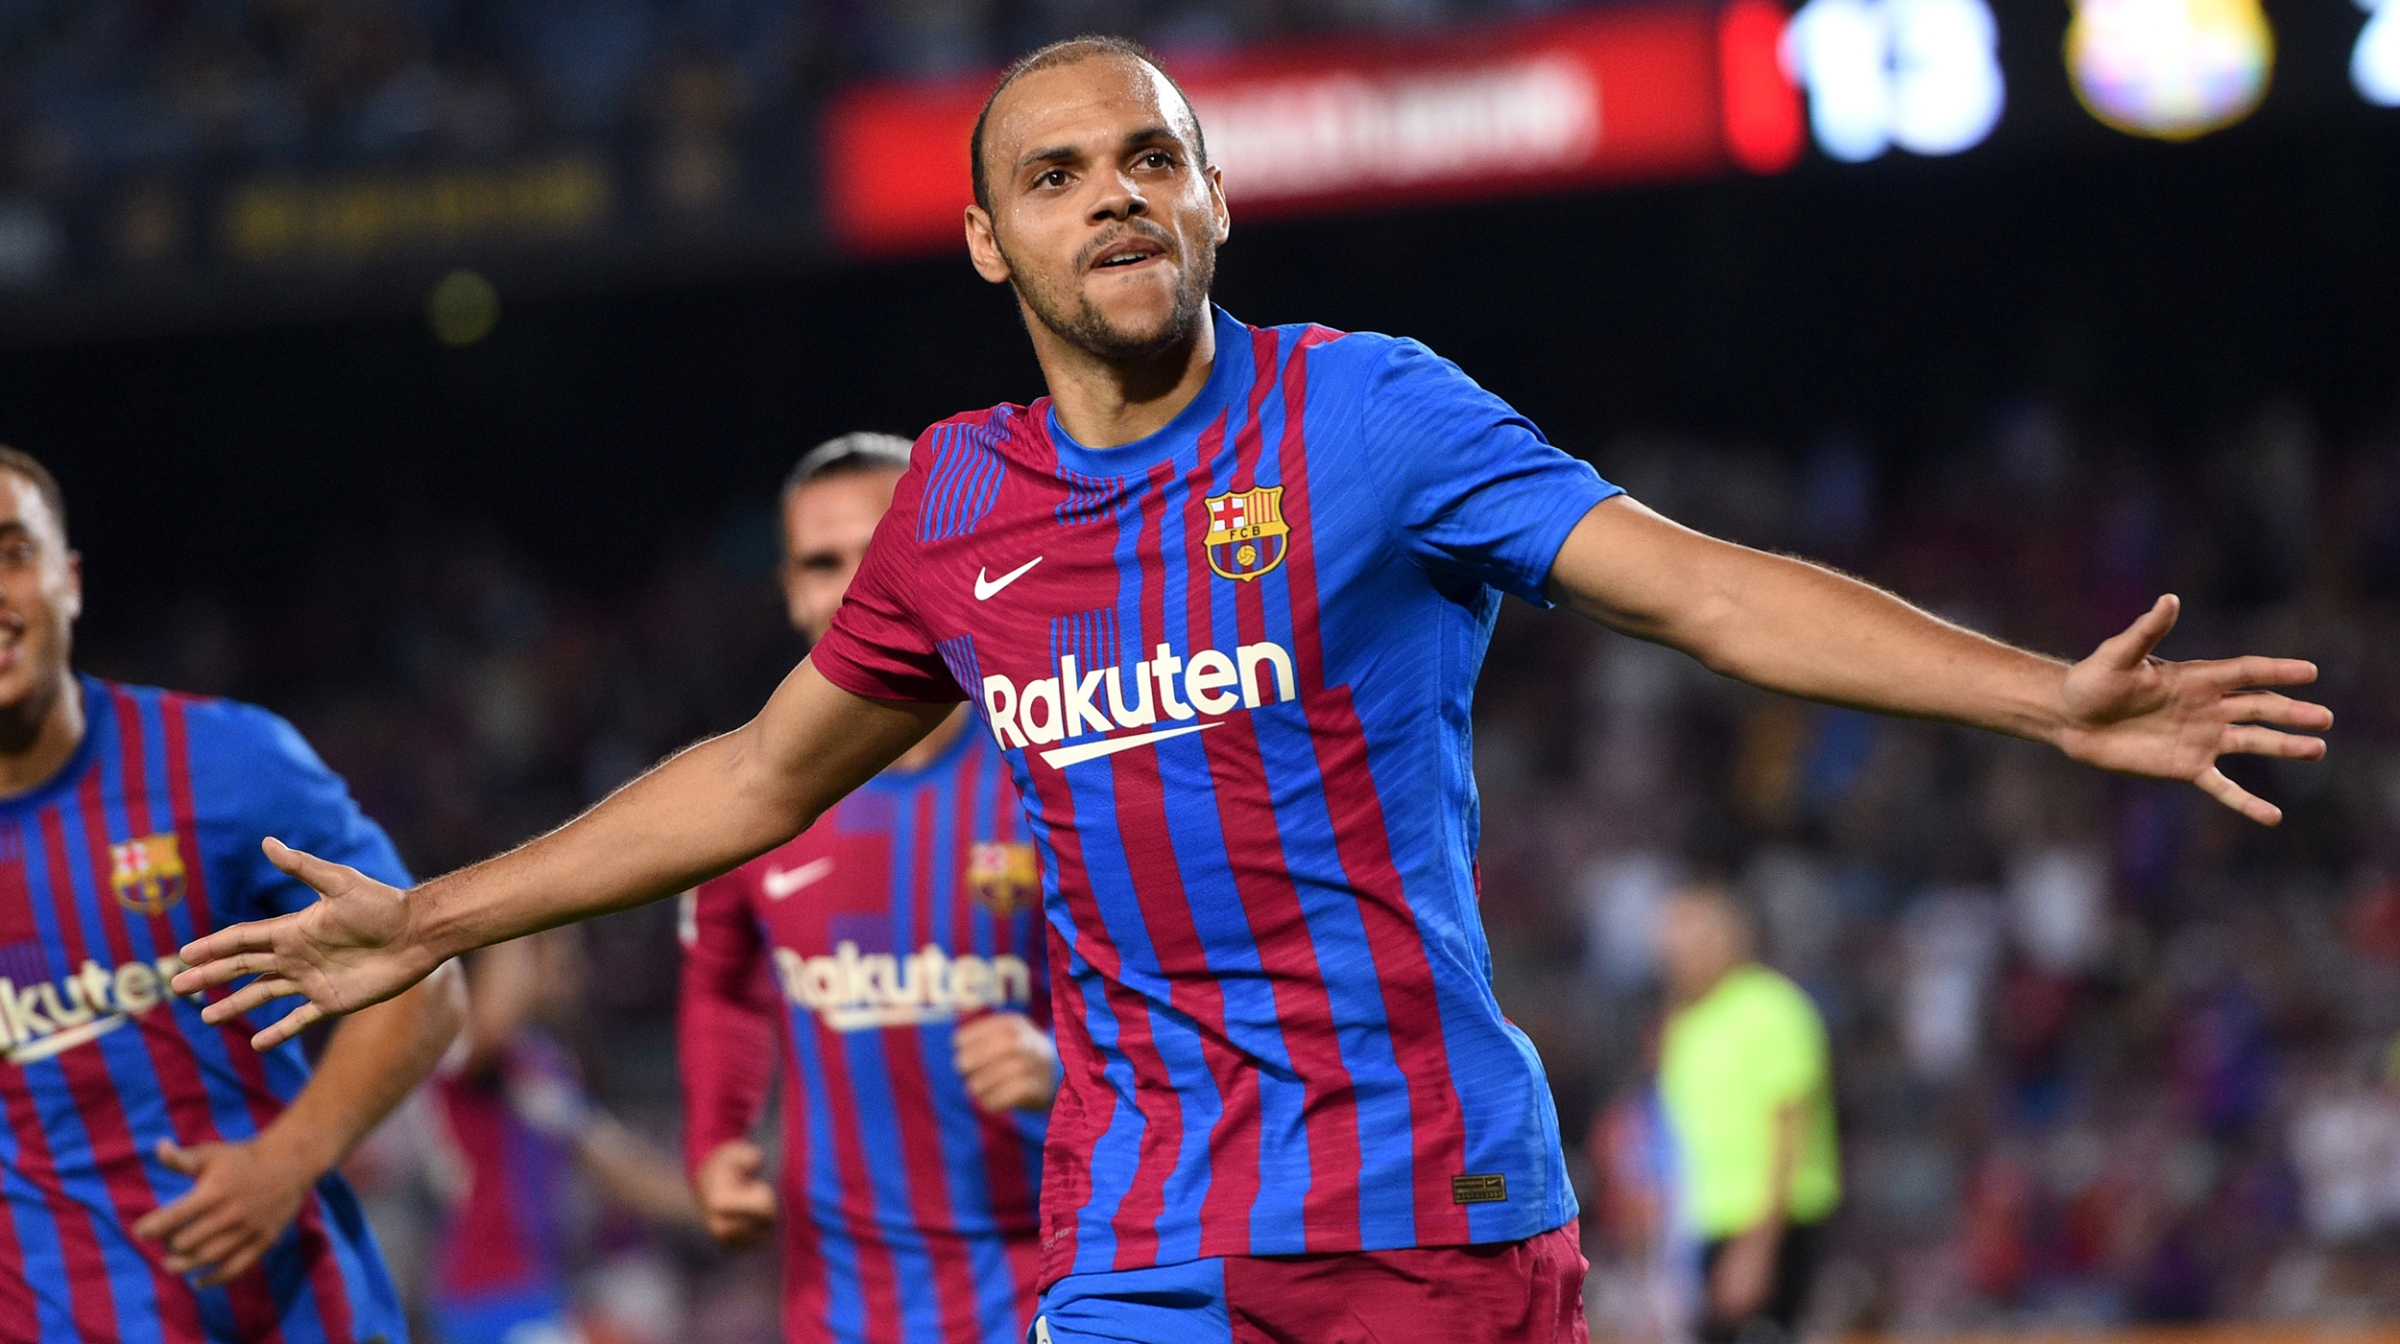 Martin Braithwaite of FC Barcelona celebrates after scoring their team's third goal during the LaLiga Santander match between FC Barcelona and Real Sociedad at Camp Nou on August 15, 2021 in Barcelona